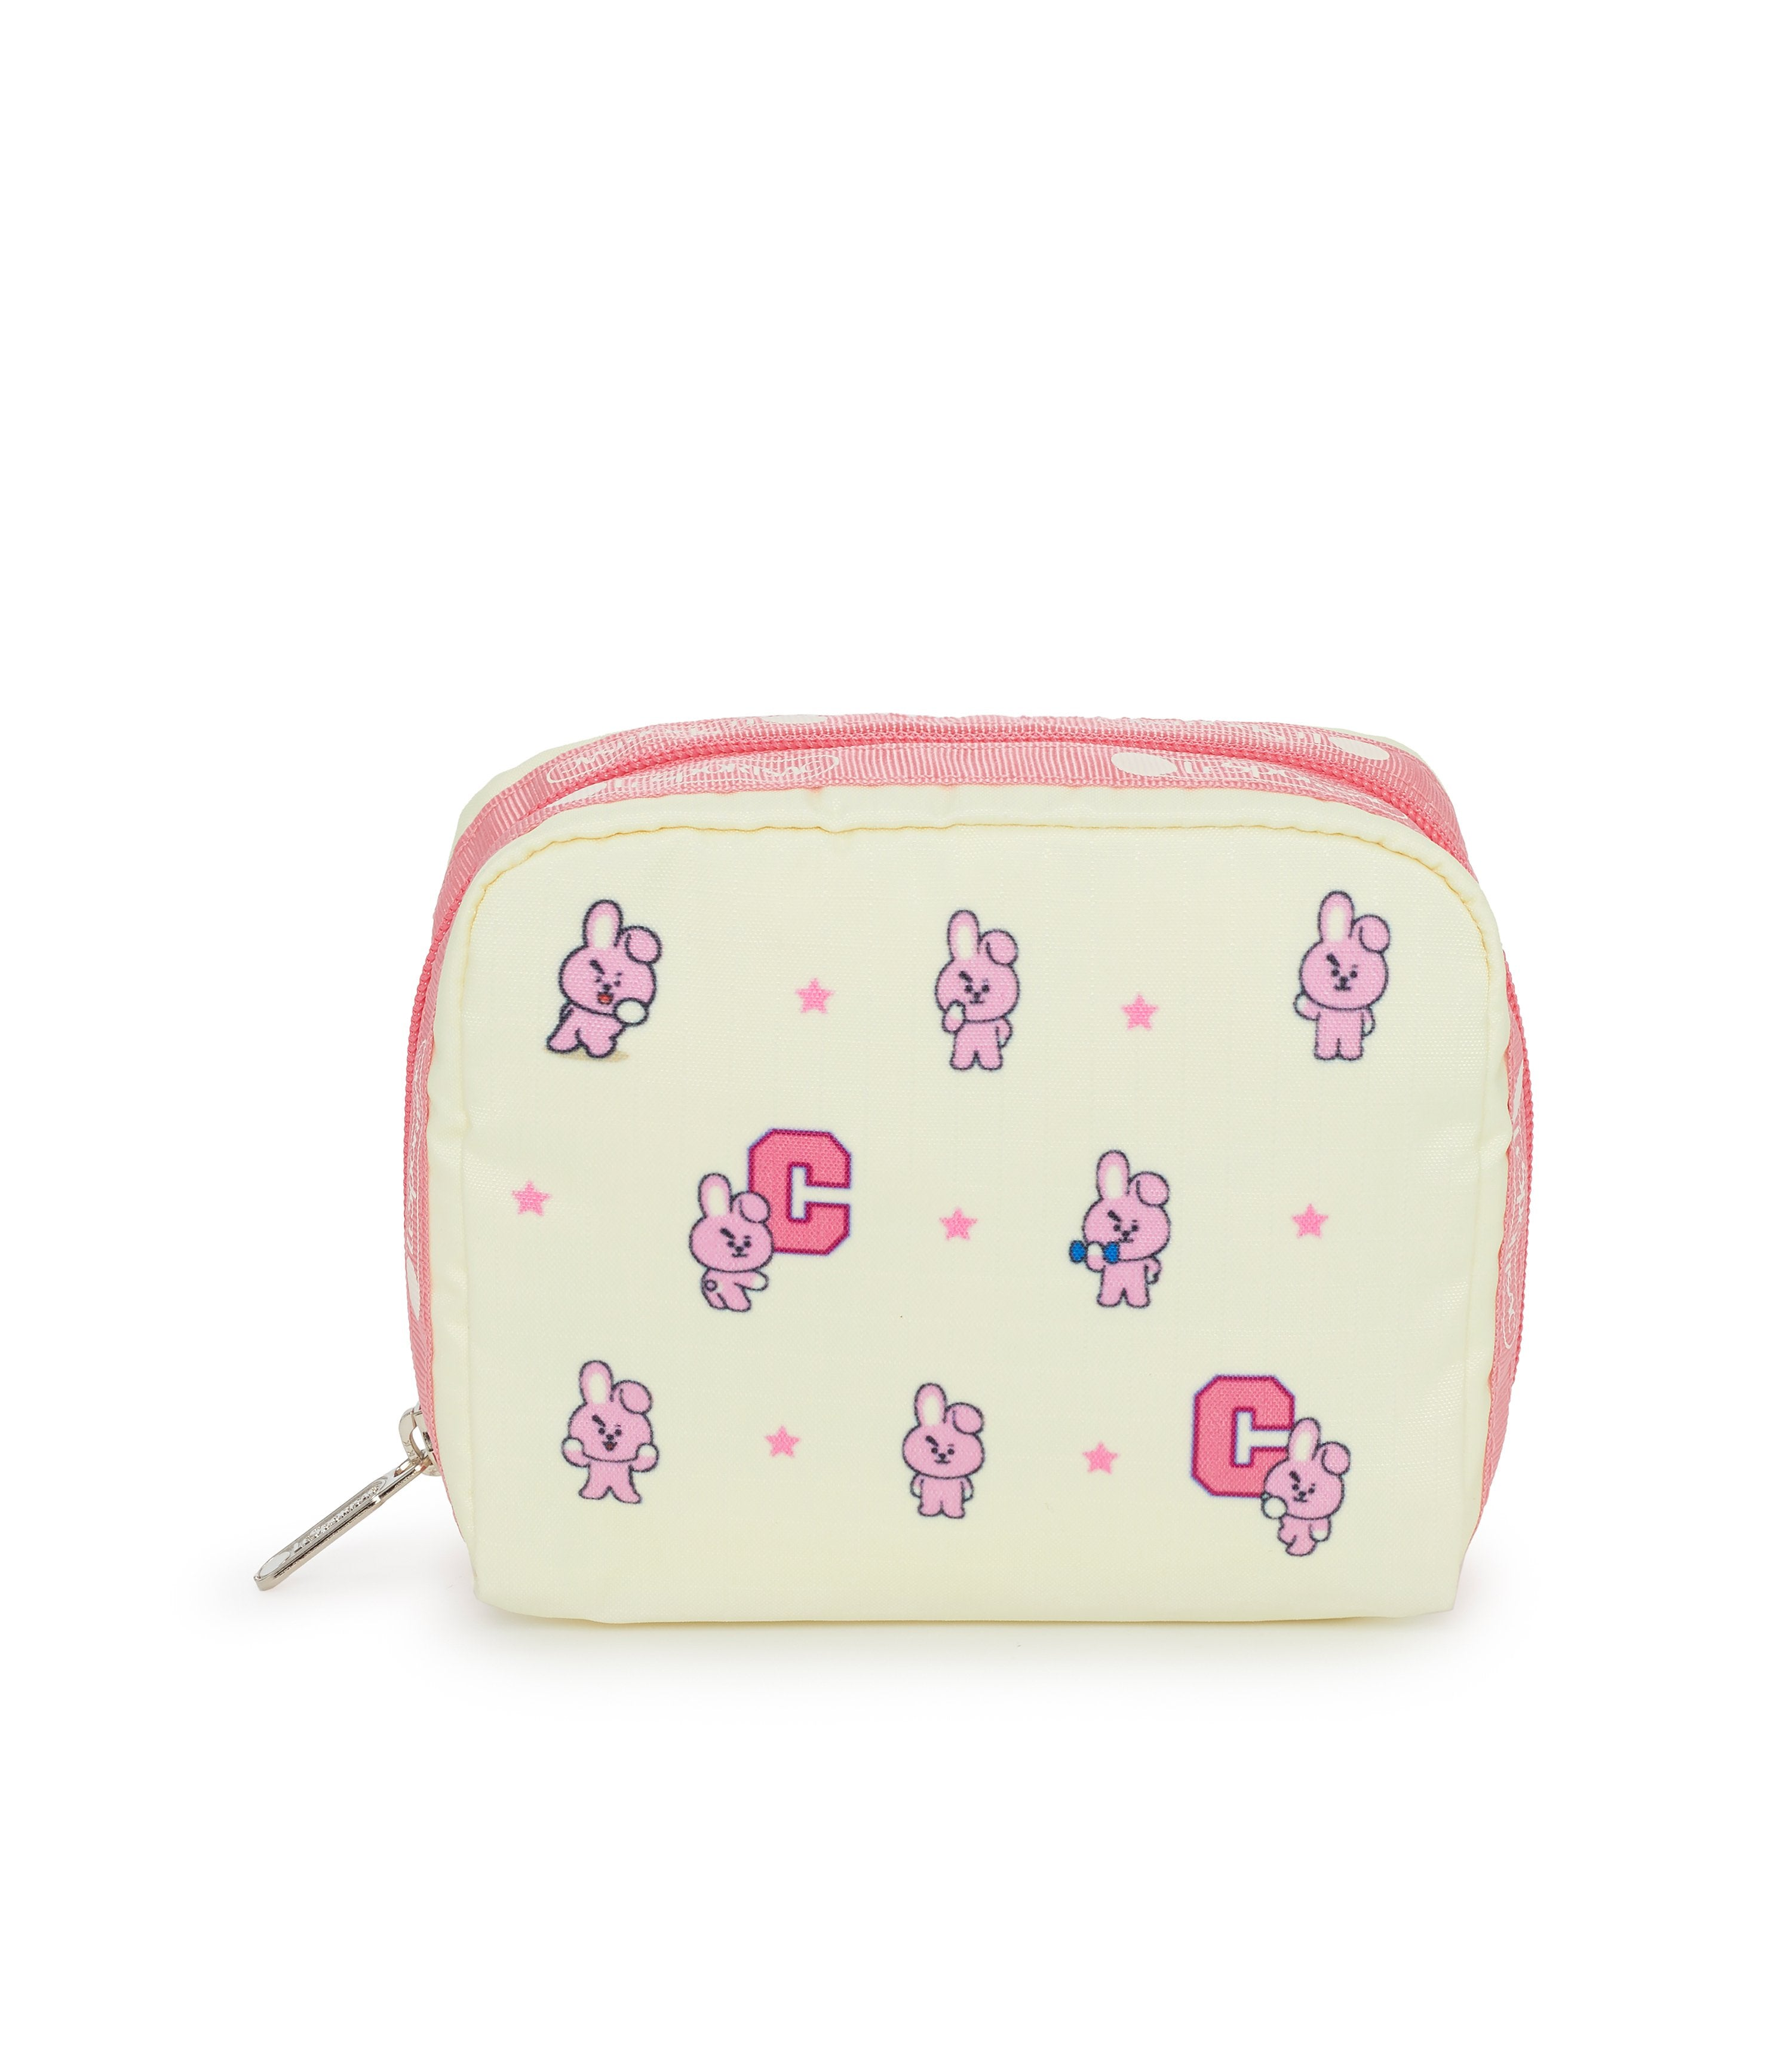 Square Cosmetic, Line Friends, BTS Cosmetic Bag and Pouch, LeSportsac, Character print, BT21 COOKY